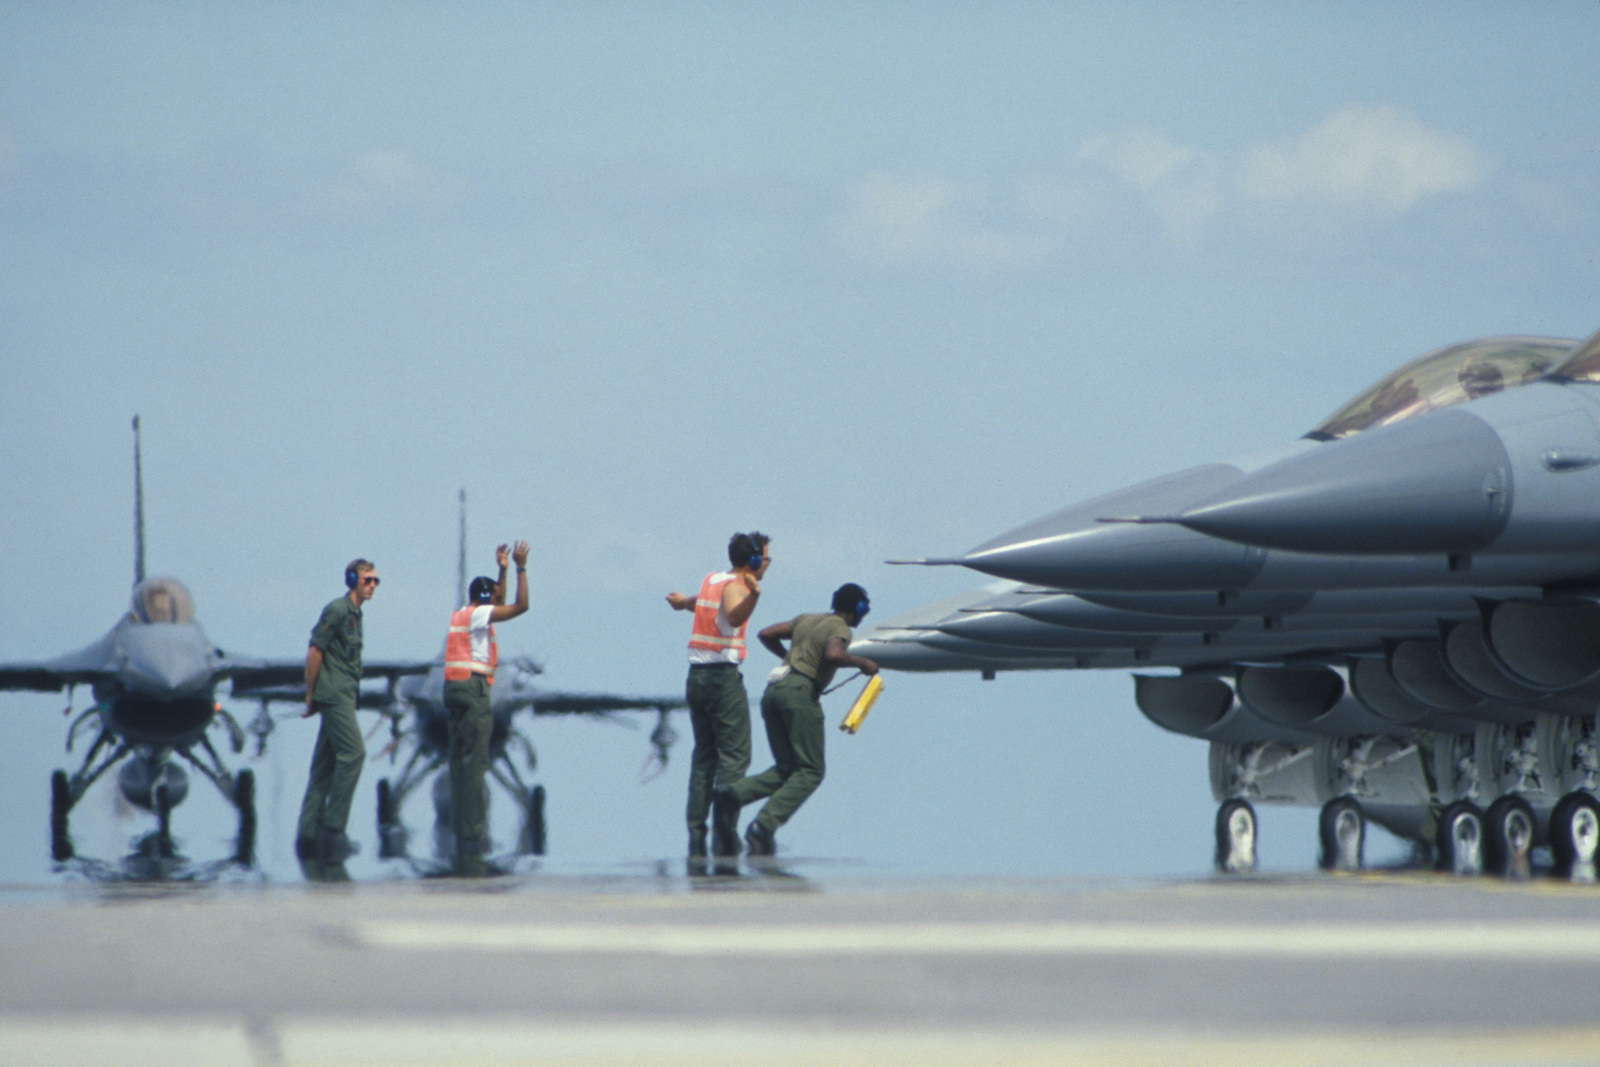 Members of the ground crew prepare a squadron of F-16